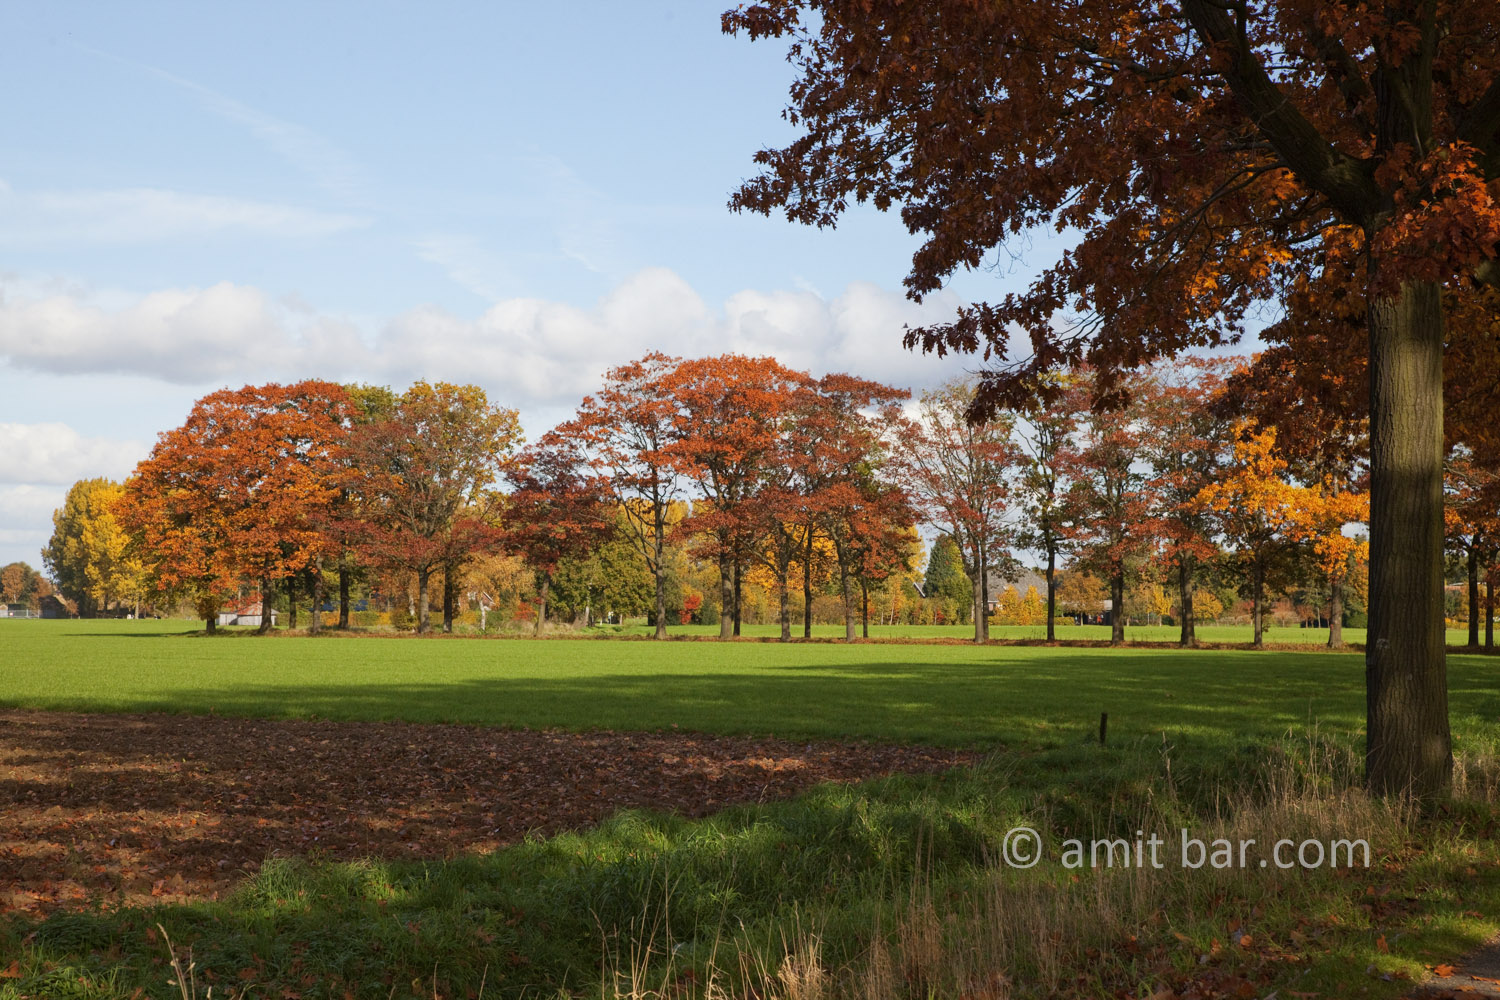 Autumn trees II: Autumn in De Achterhoek, The Netherlands